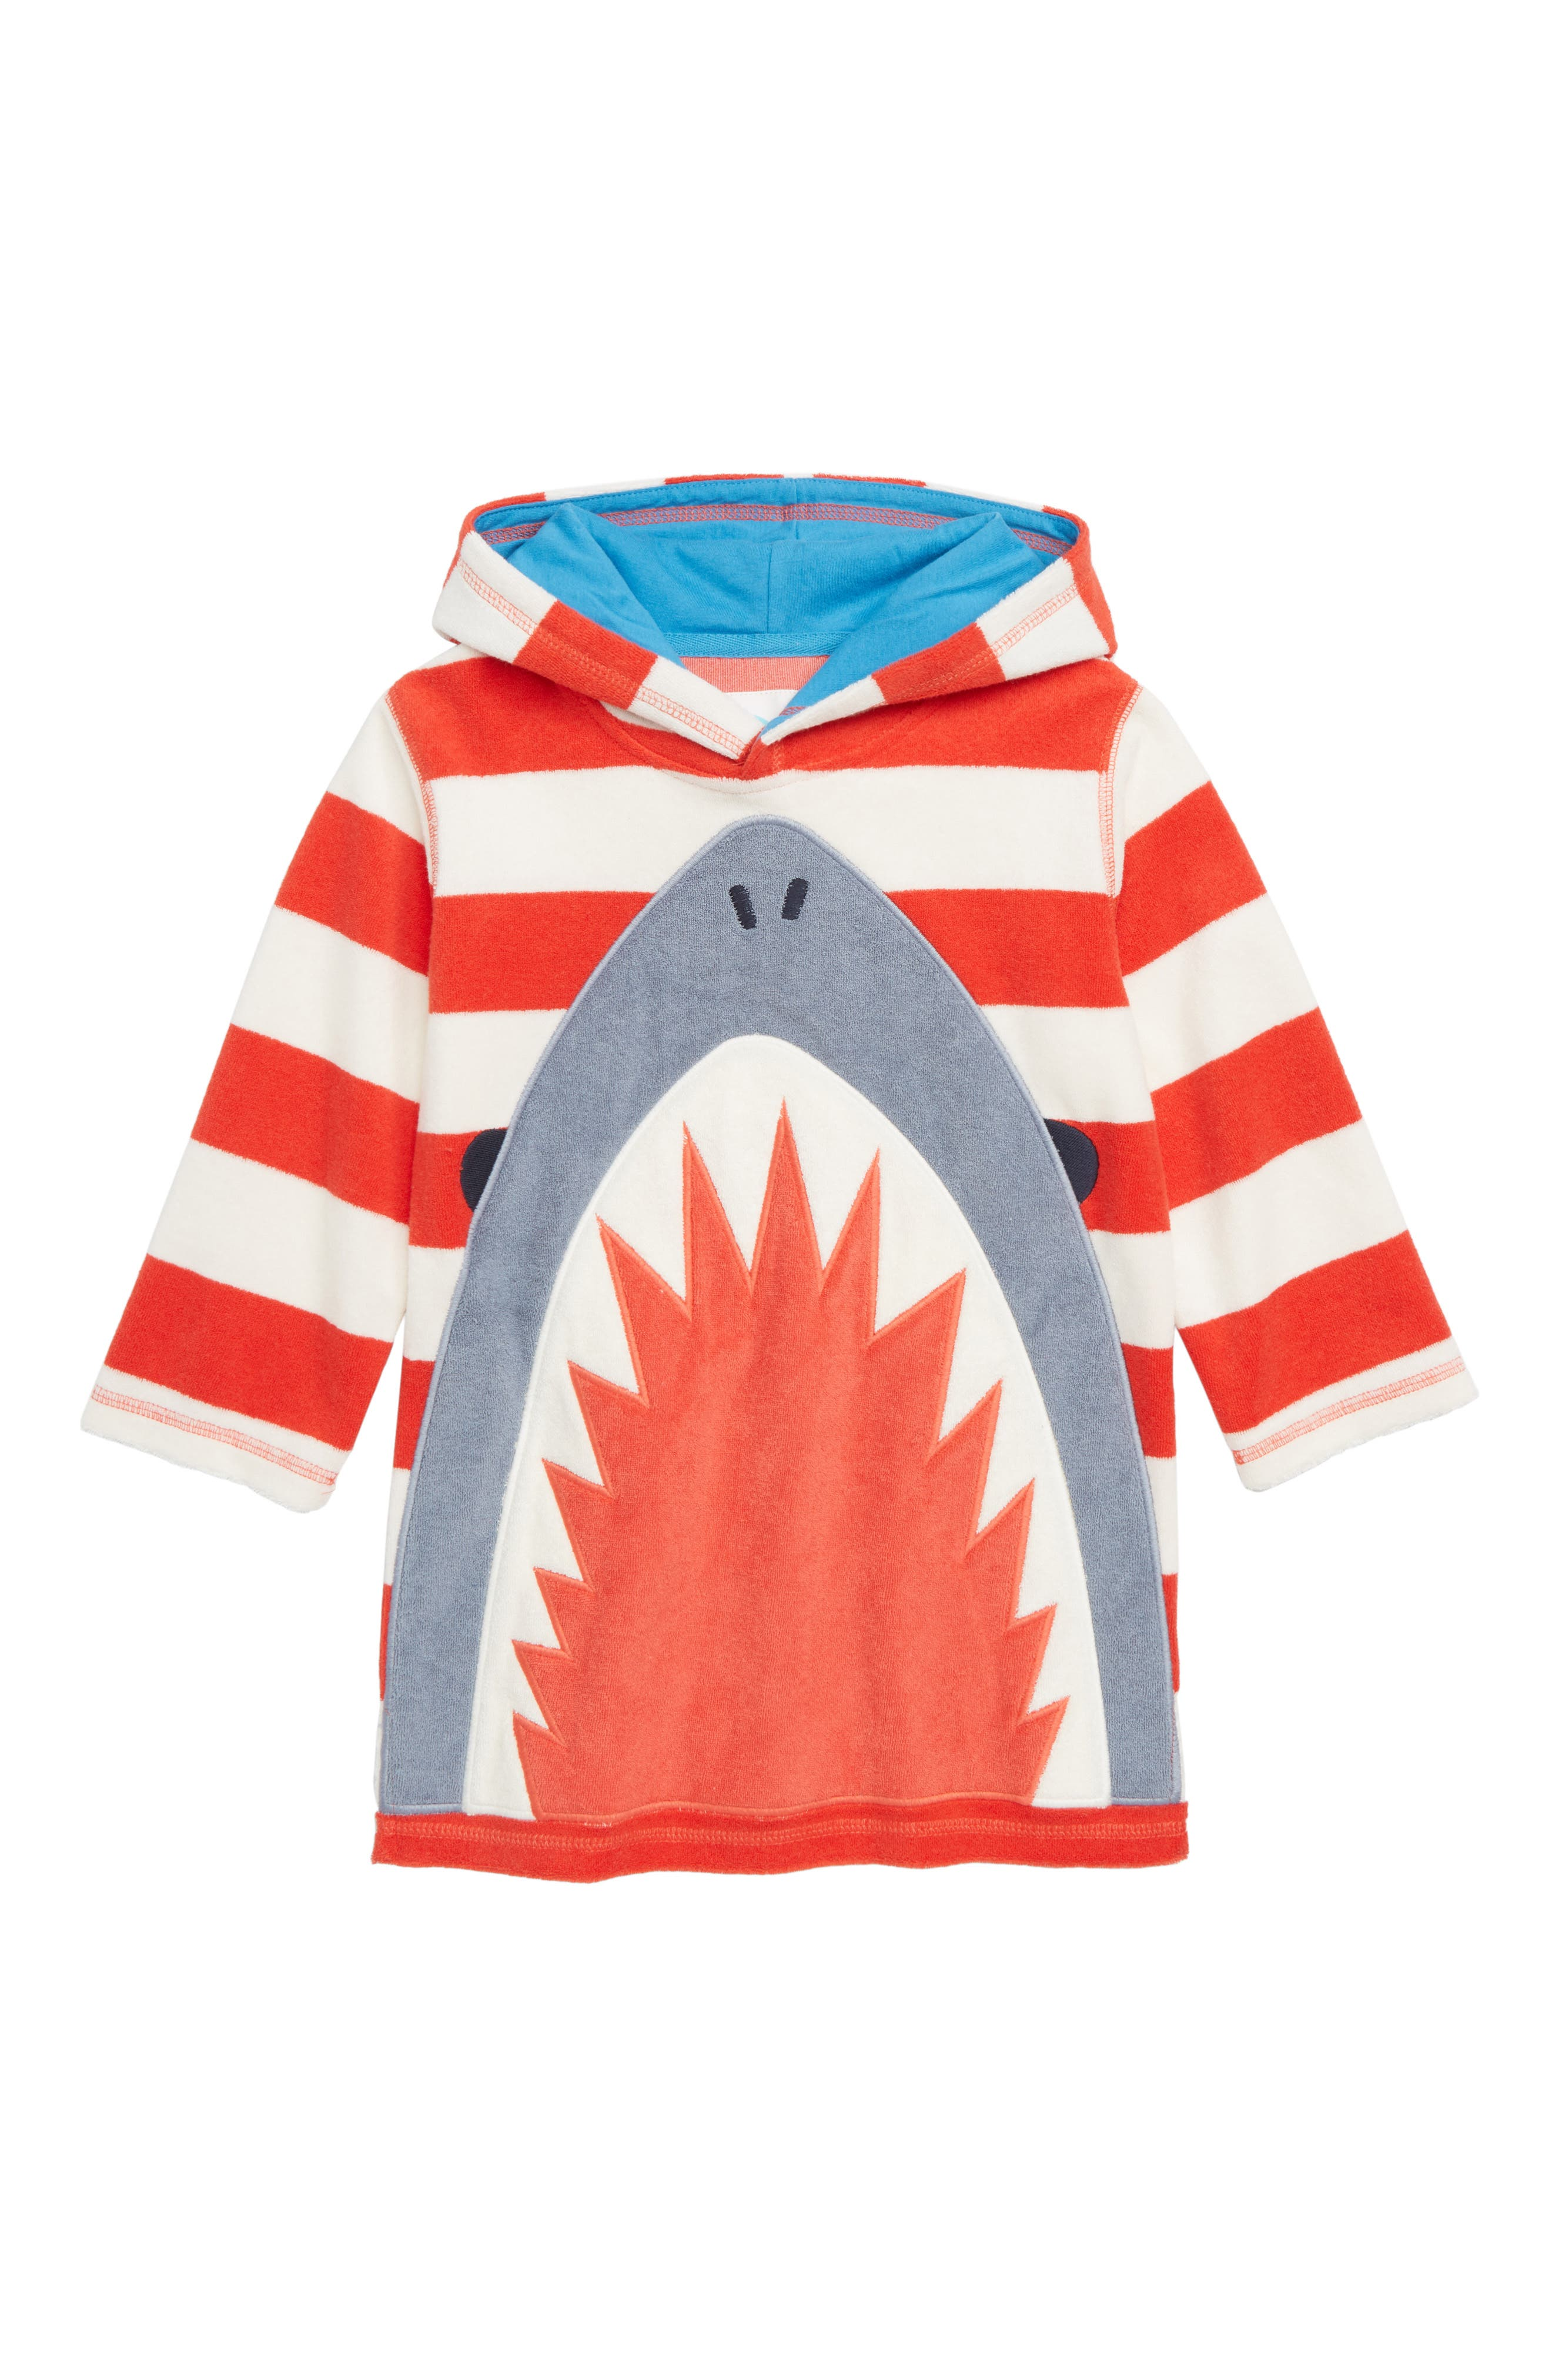 MINI BODEN, Towelling Hooded Cover-Up, Main thumbnail 1, color, BEAM RED/ IVORY SHARK